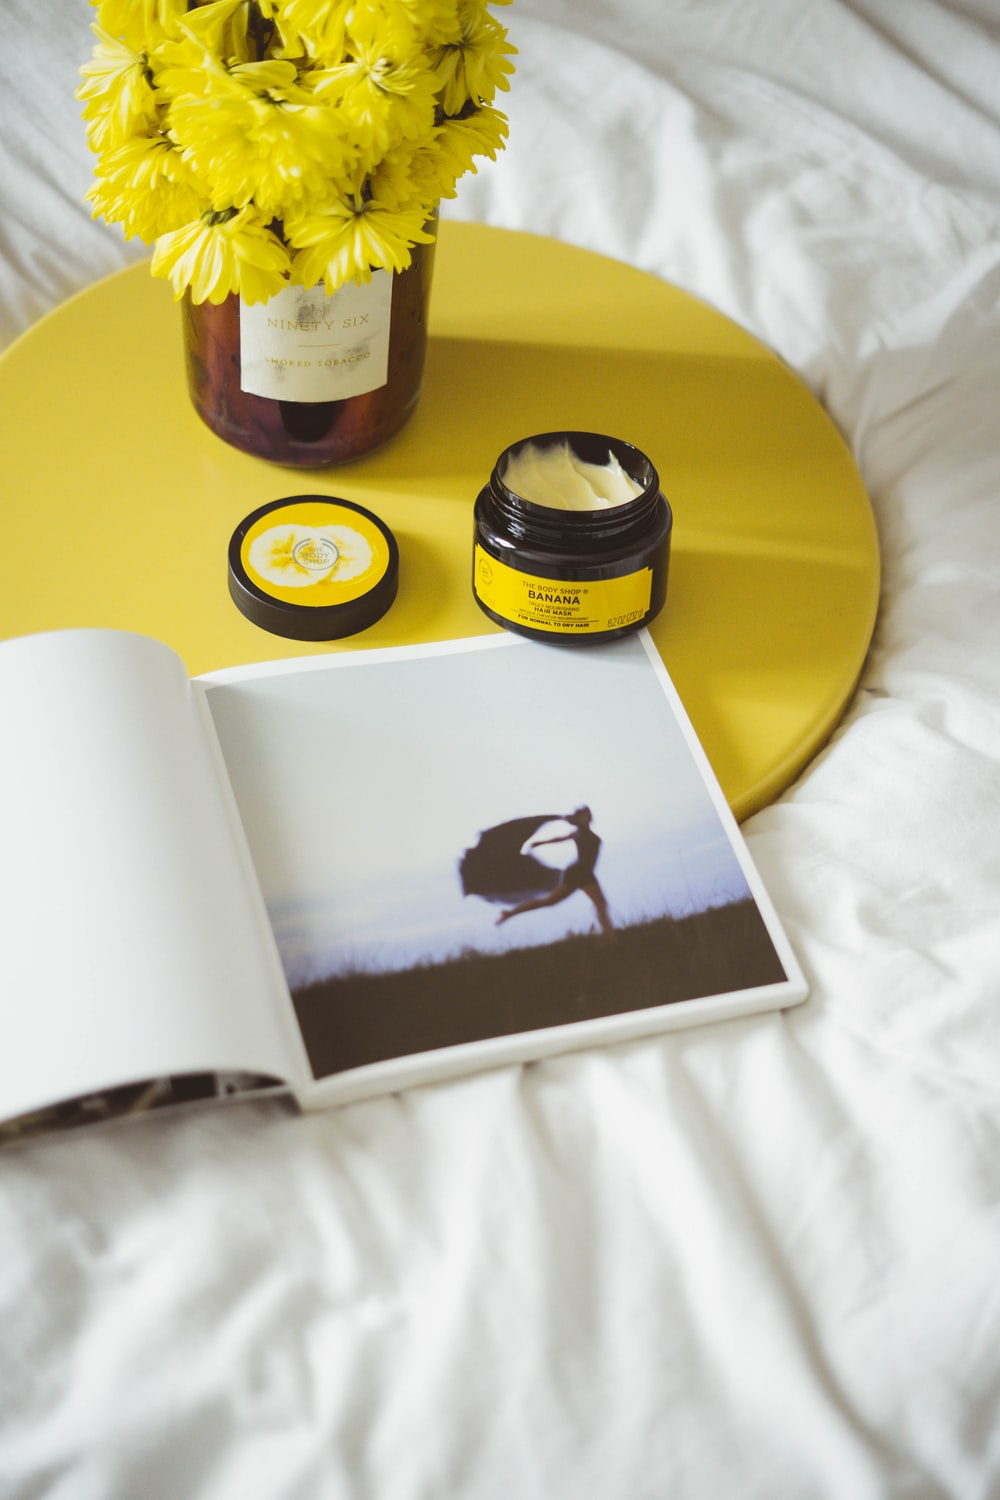 white book and round black container on top of yellow tray